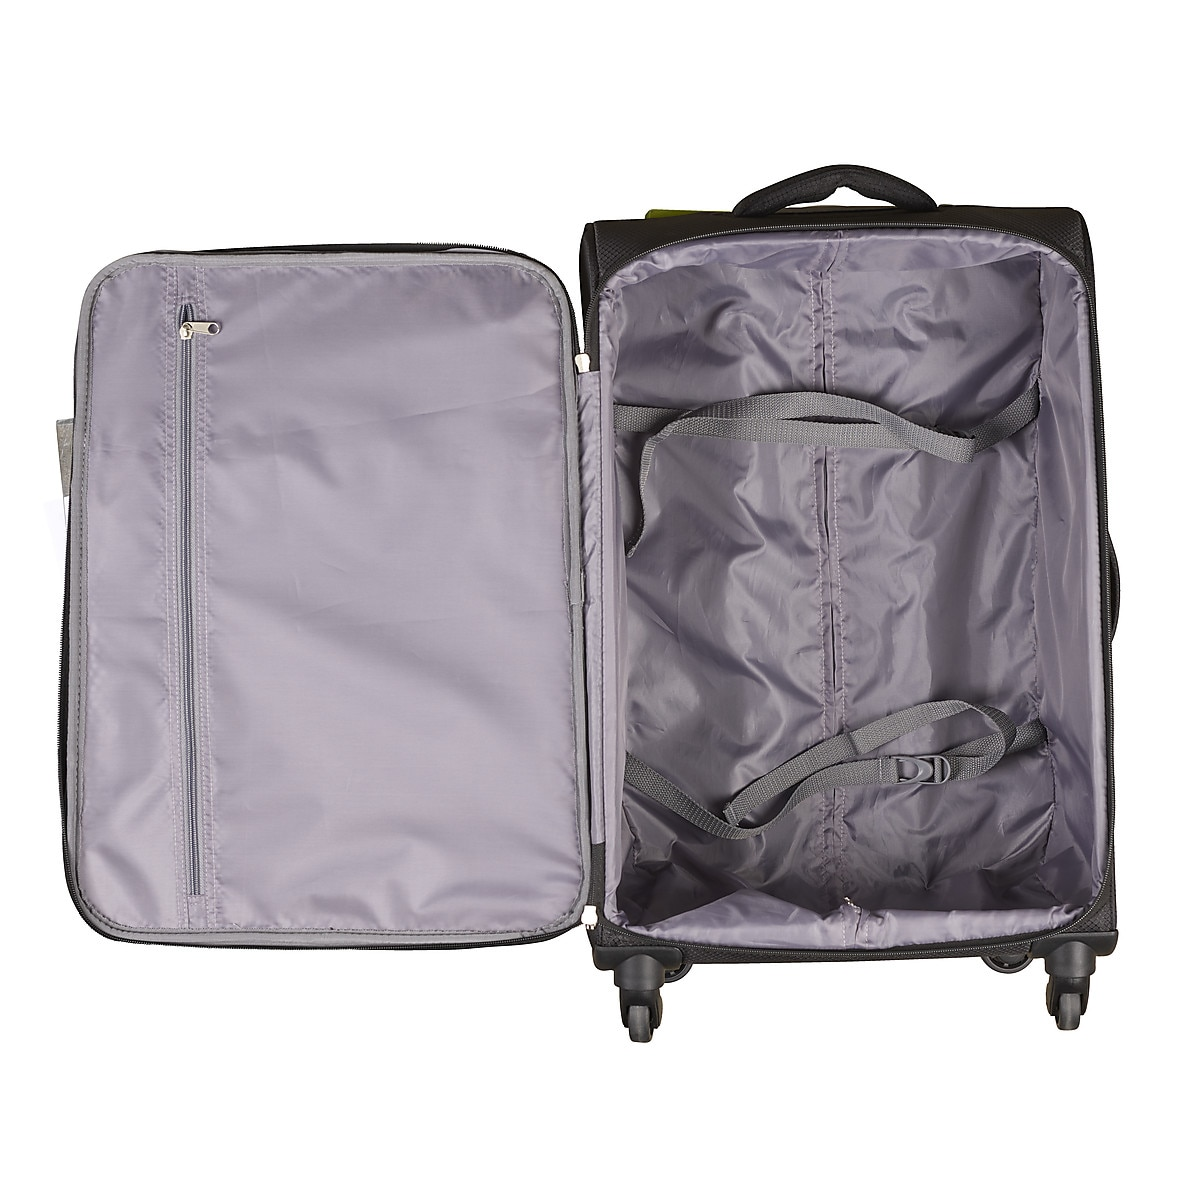 Asaklitt Lightweight Black Trolley Case